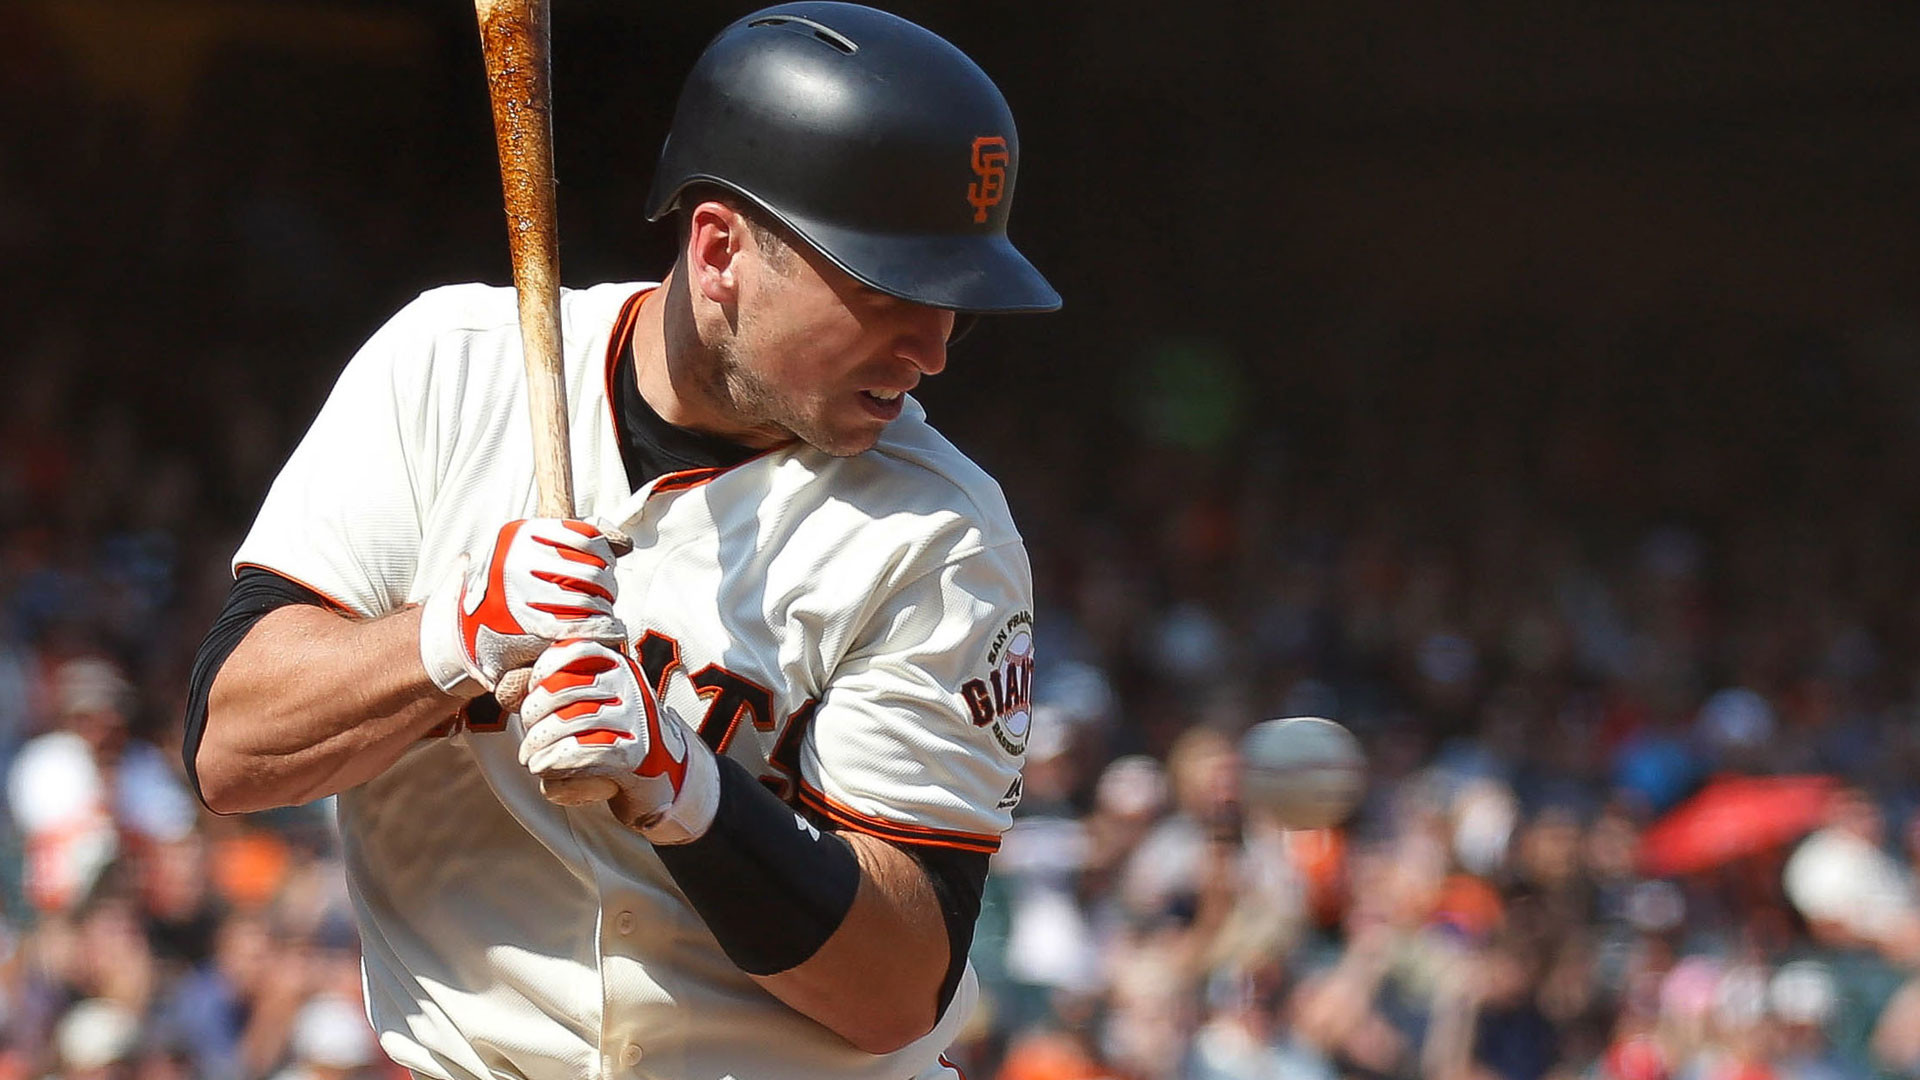 Buster Posey Wallpaper 76 Images